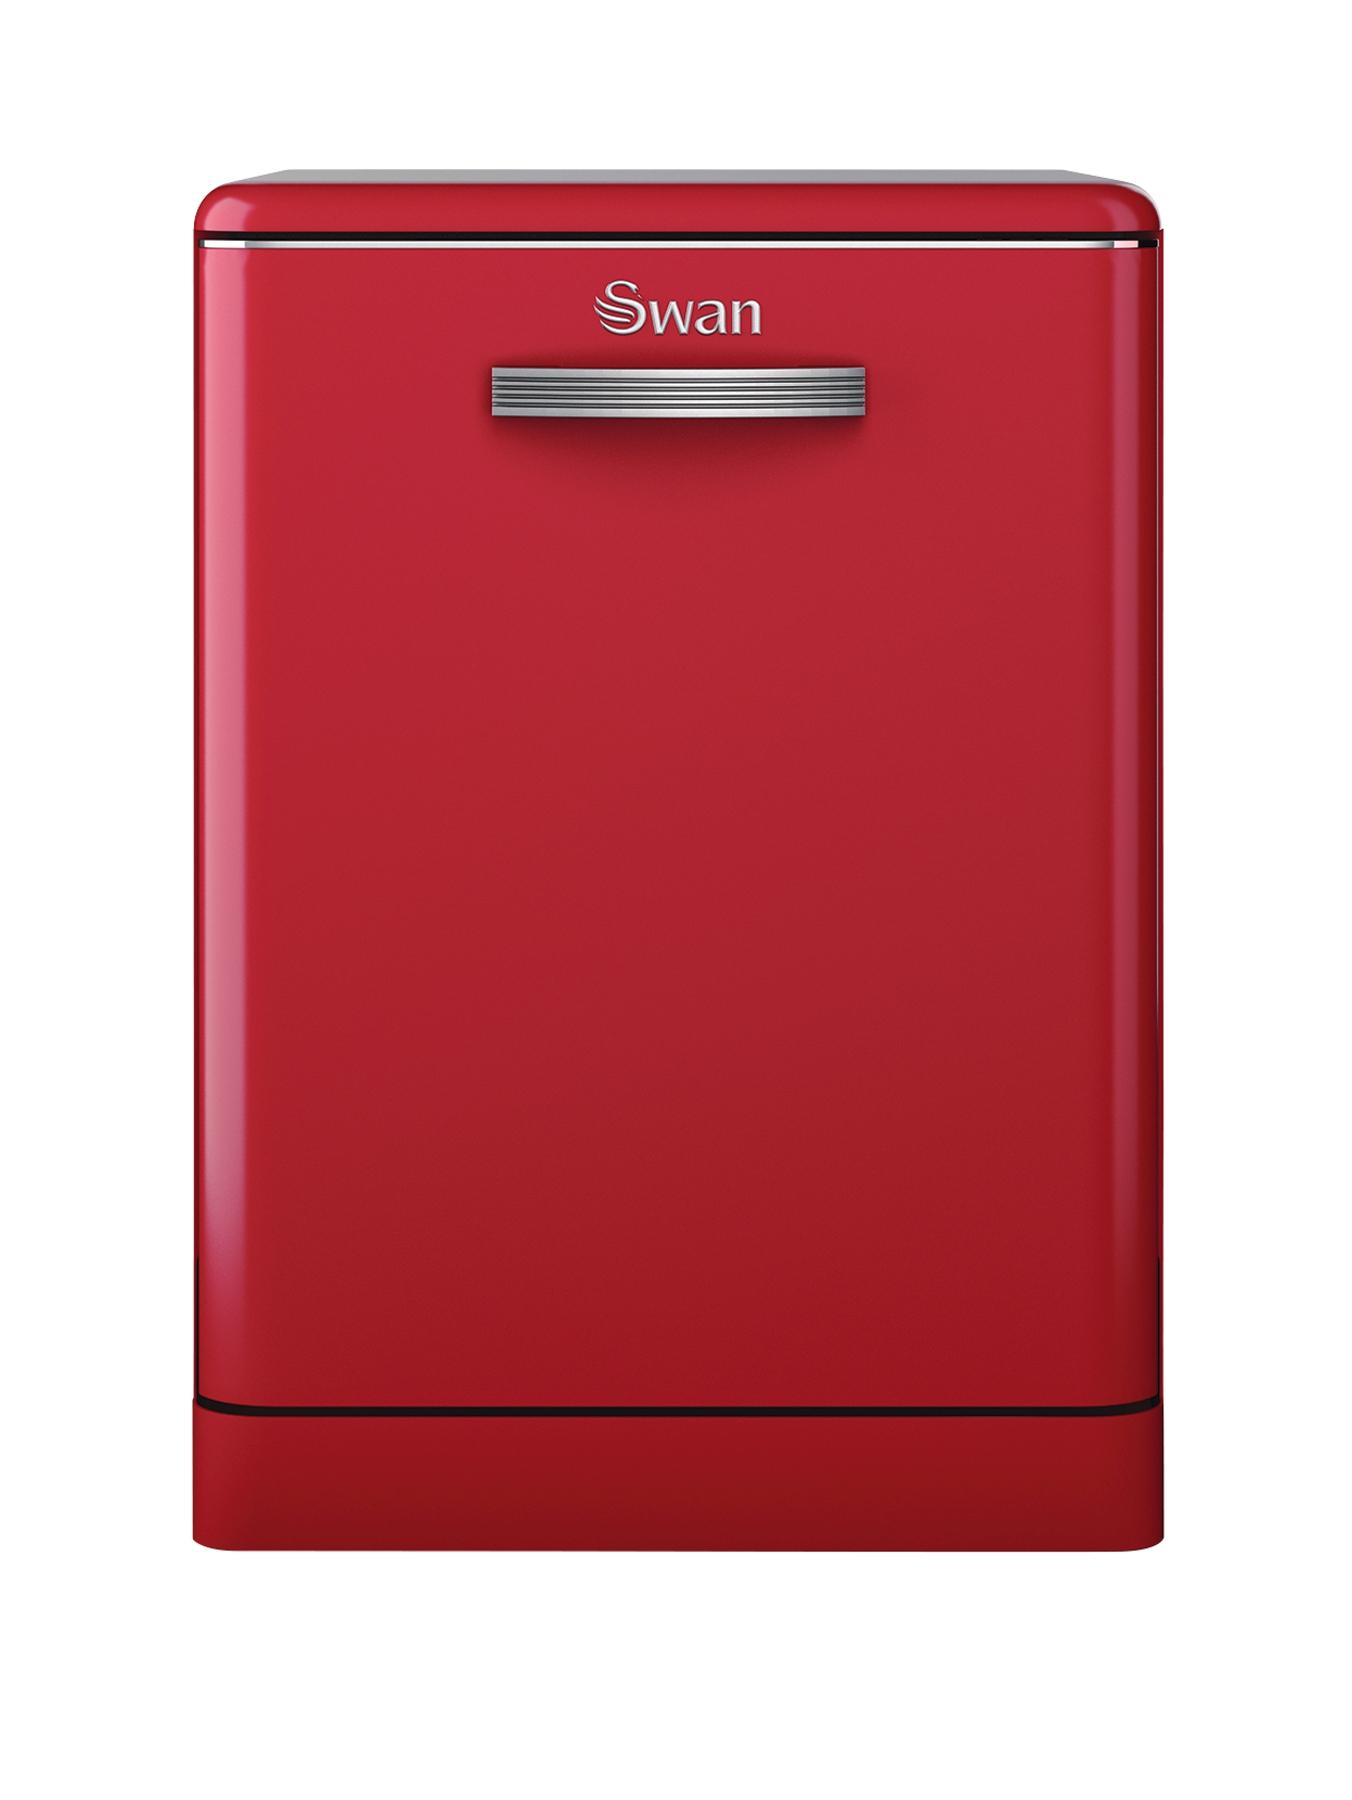 SDW7040RN Retro Dishwasher - Red